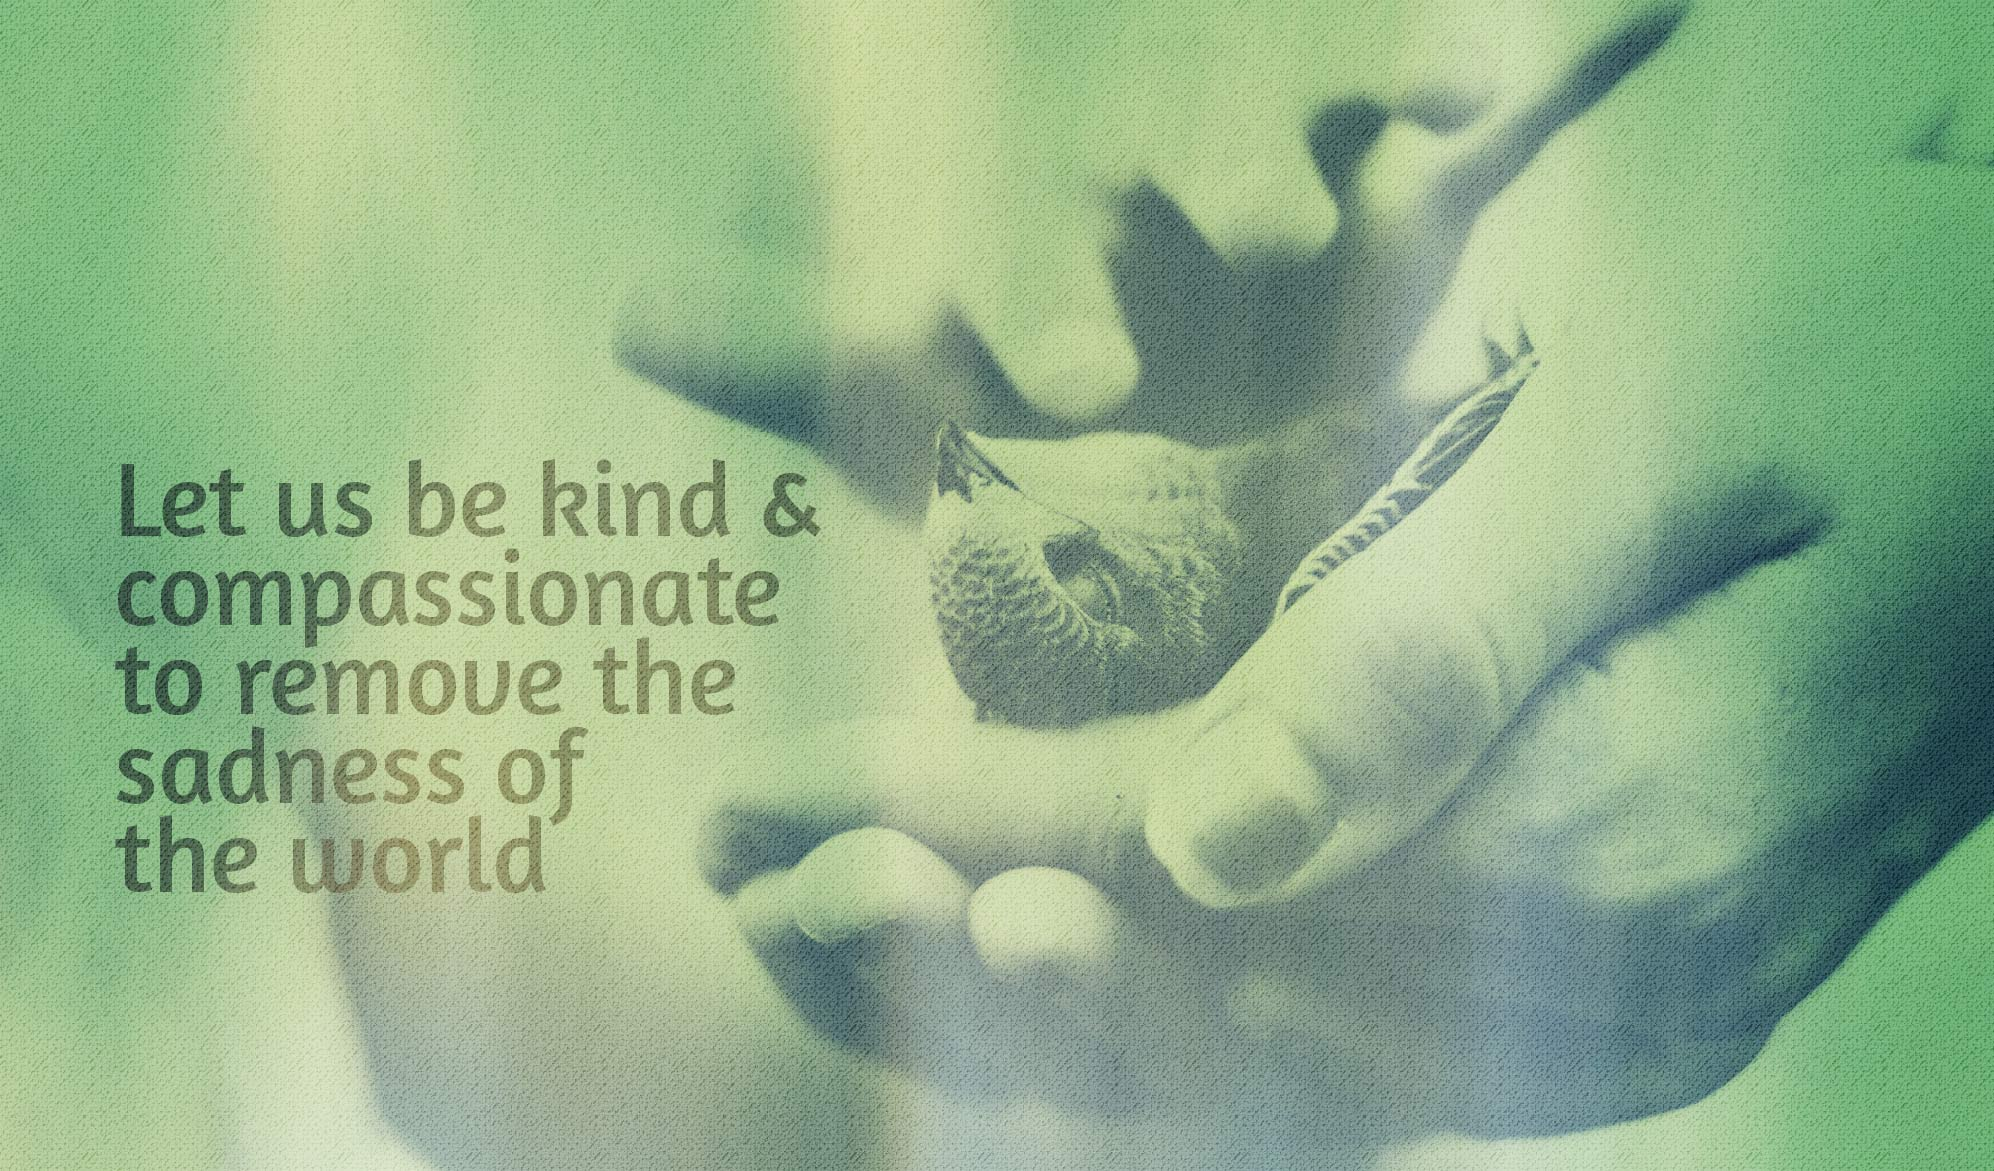 daily inspirational quote image:hands holding a dead bird, in a green yellow light